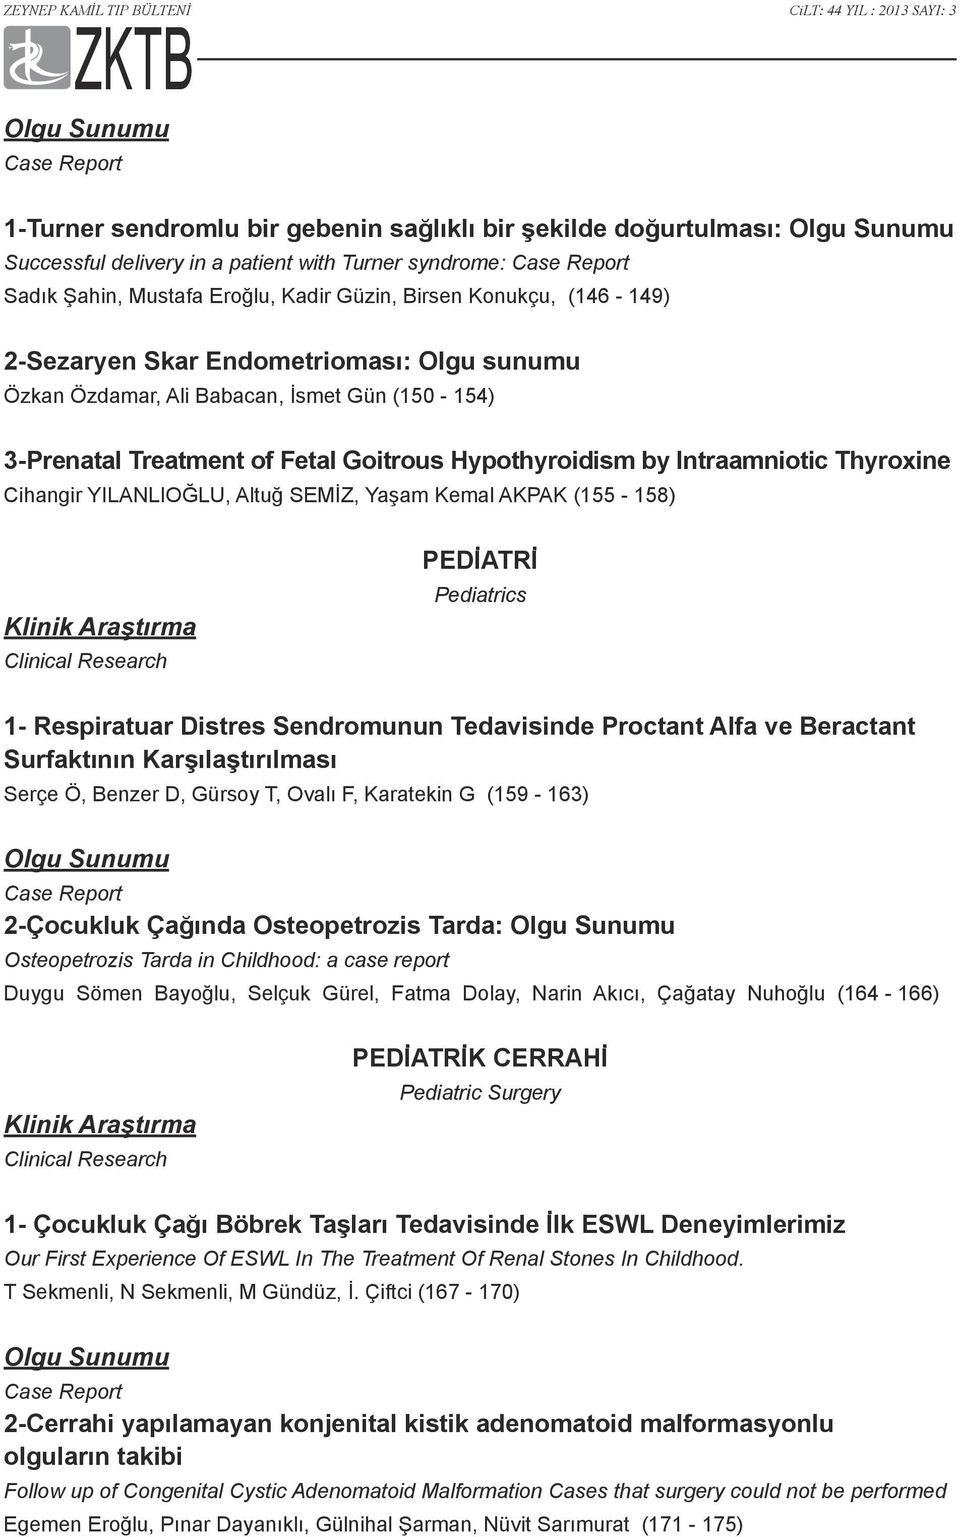 Intraamniotic Thyroxine Cihangir YILANLIOĞLU, Altuğ SEMİZ, Yaşam Kemal AKPAK (155-158) Klinik Araştırma Clinical Research PEDİATRİ Pediatrics 1- Respiratuar Distres Sendromunun Tedavisinde Proctant